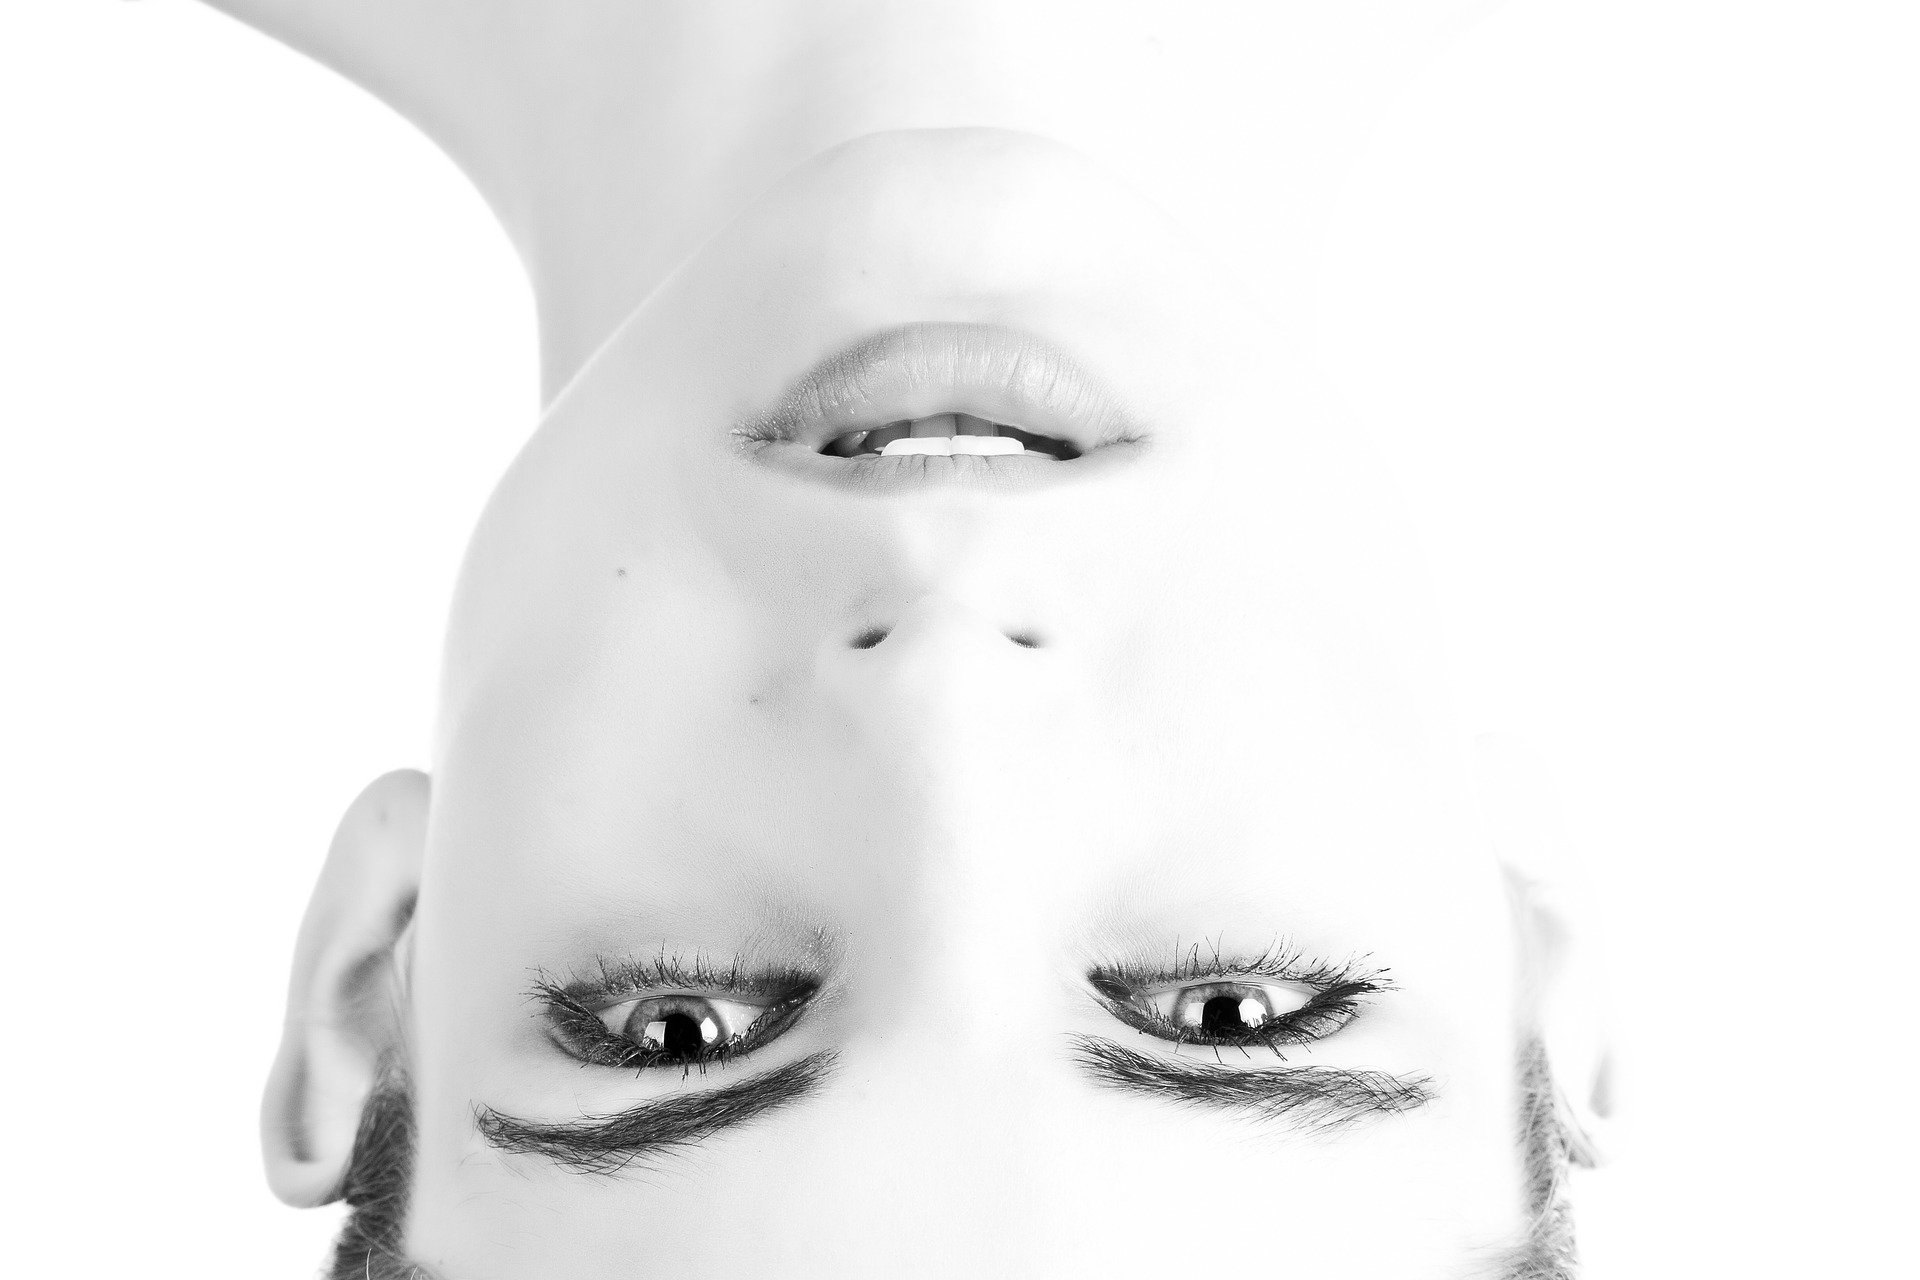 Upside-down Faces